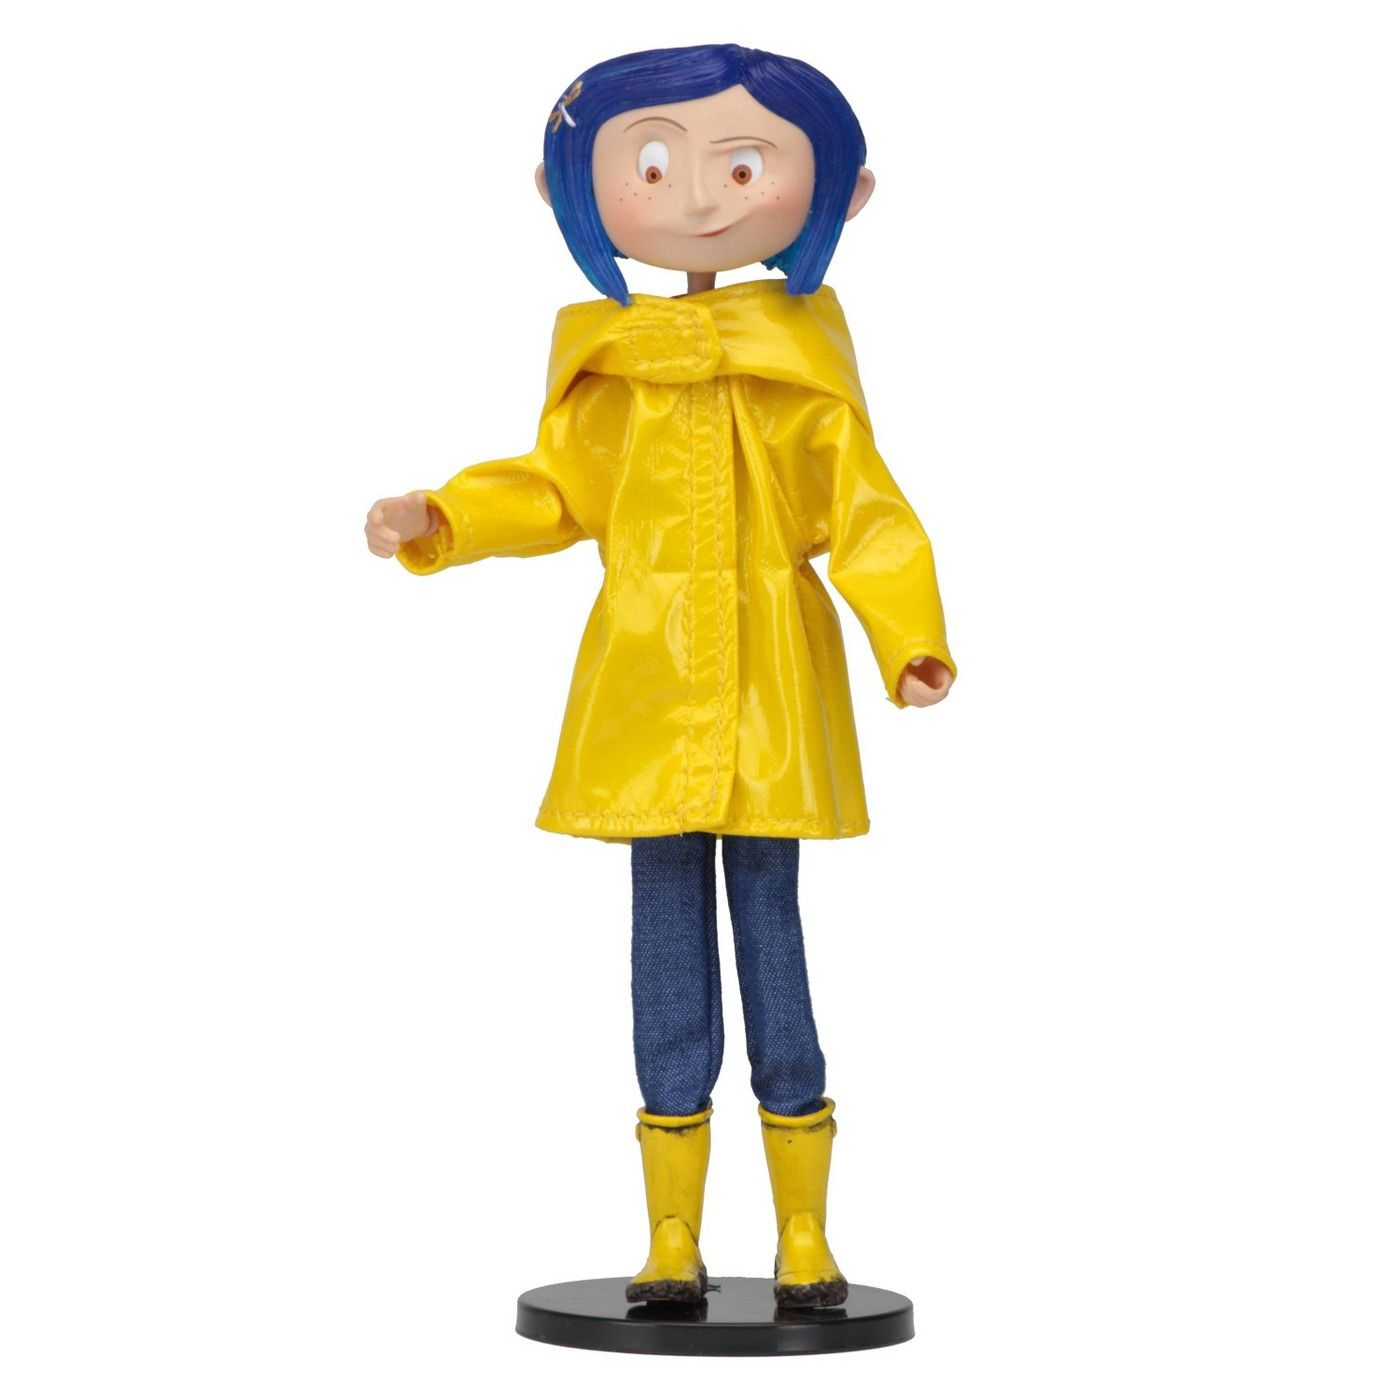 Coraline With Raincoat Boots Action Figure In 2020 Coraline Doll Coraline Raincoat